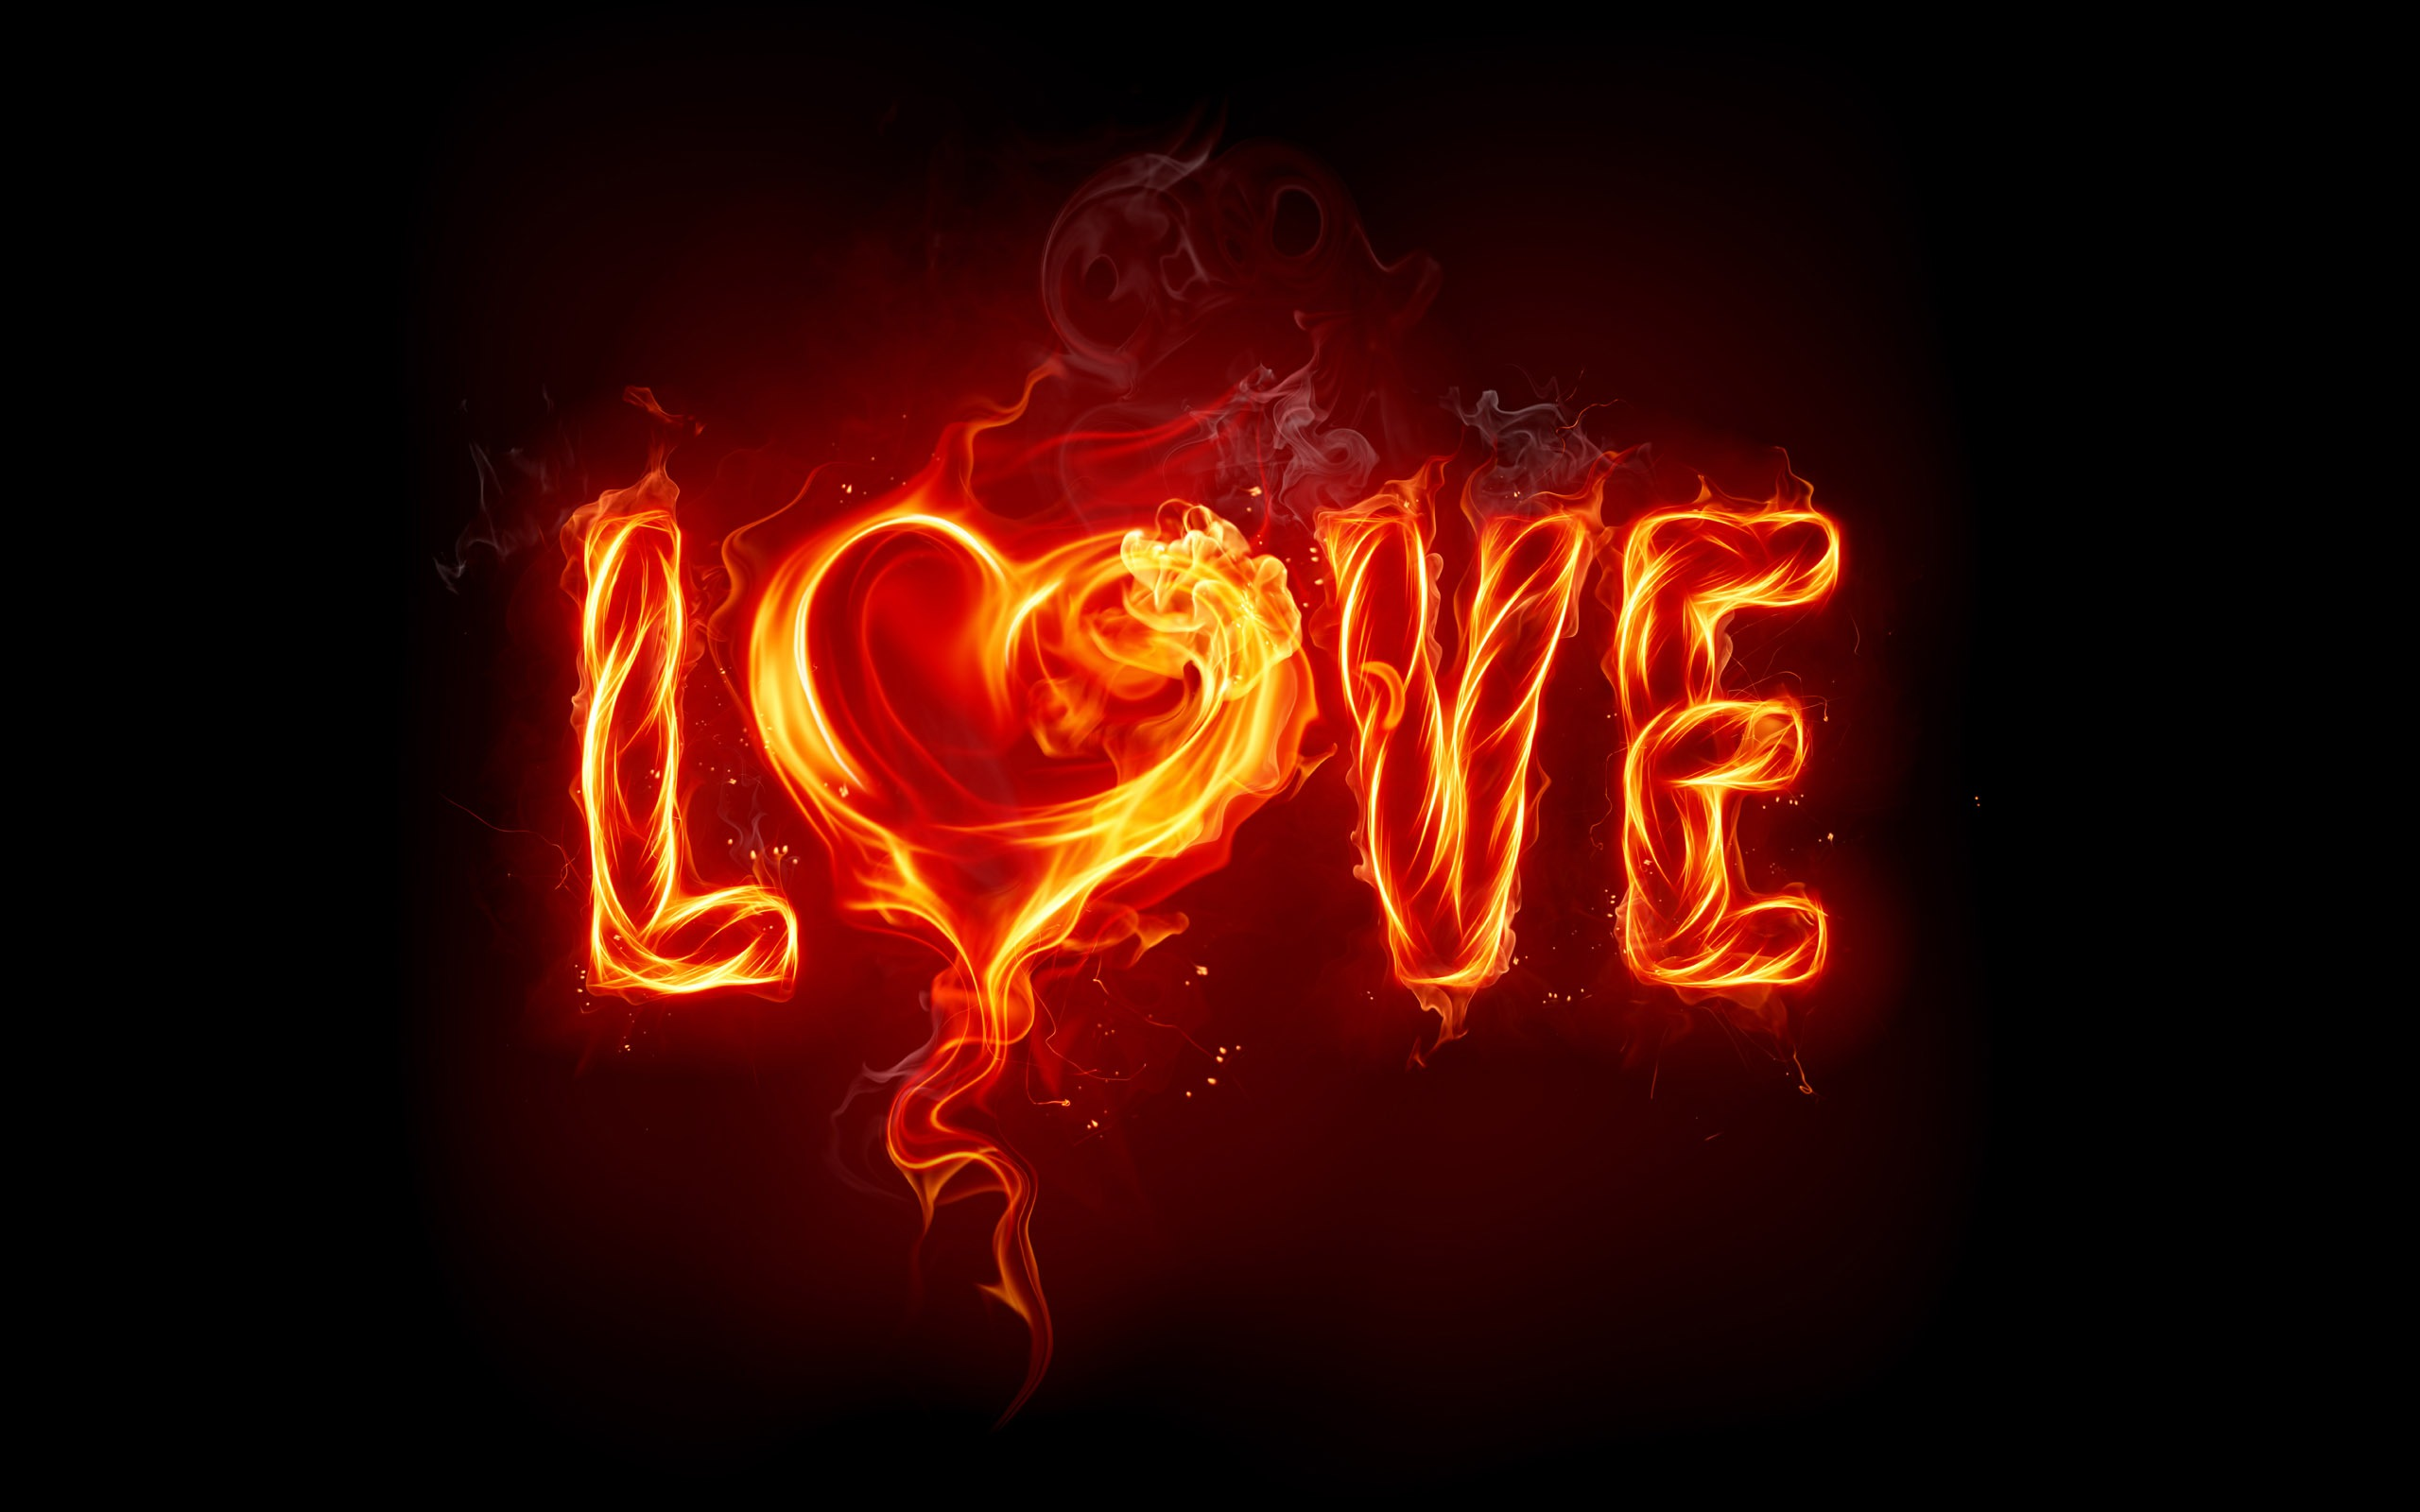 Wonderful Wallpaper Name Prashanth - love_fire_wallpaper_valentines_day_holidays_3197  Photograph_113615.jpg